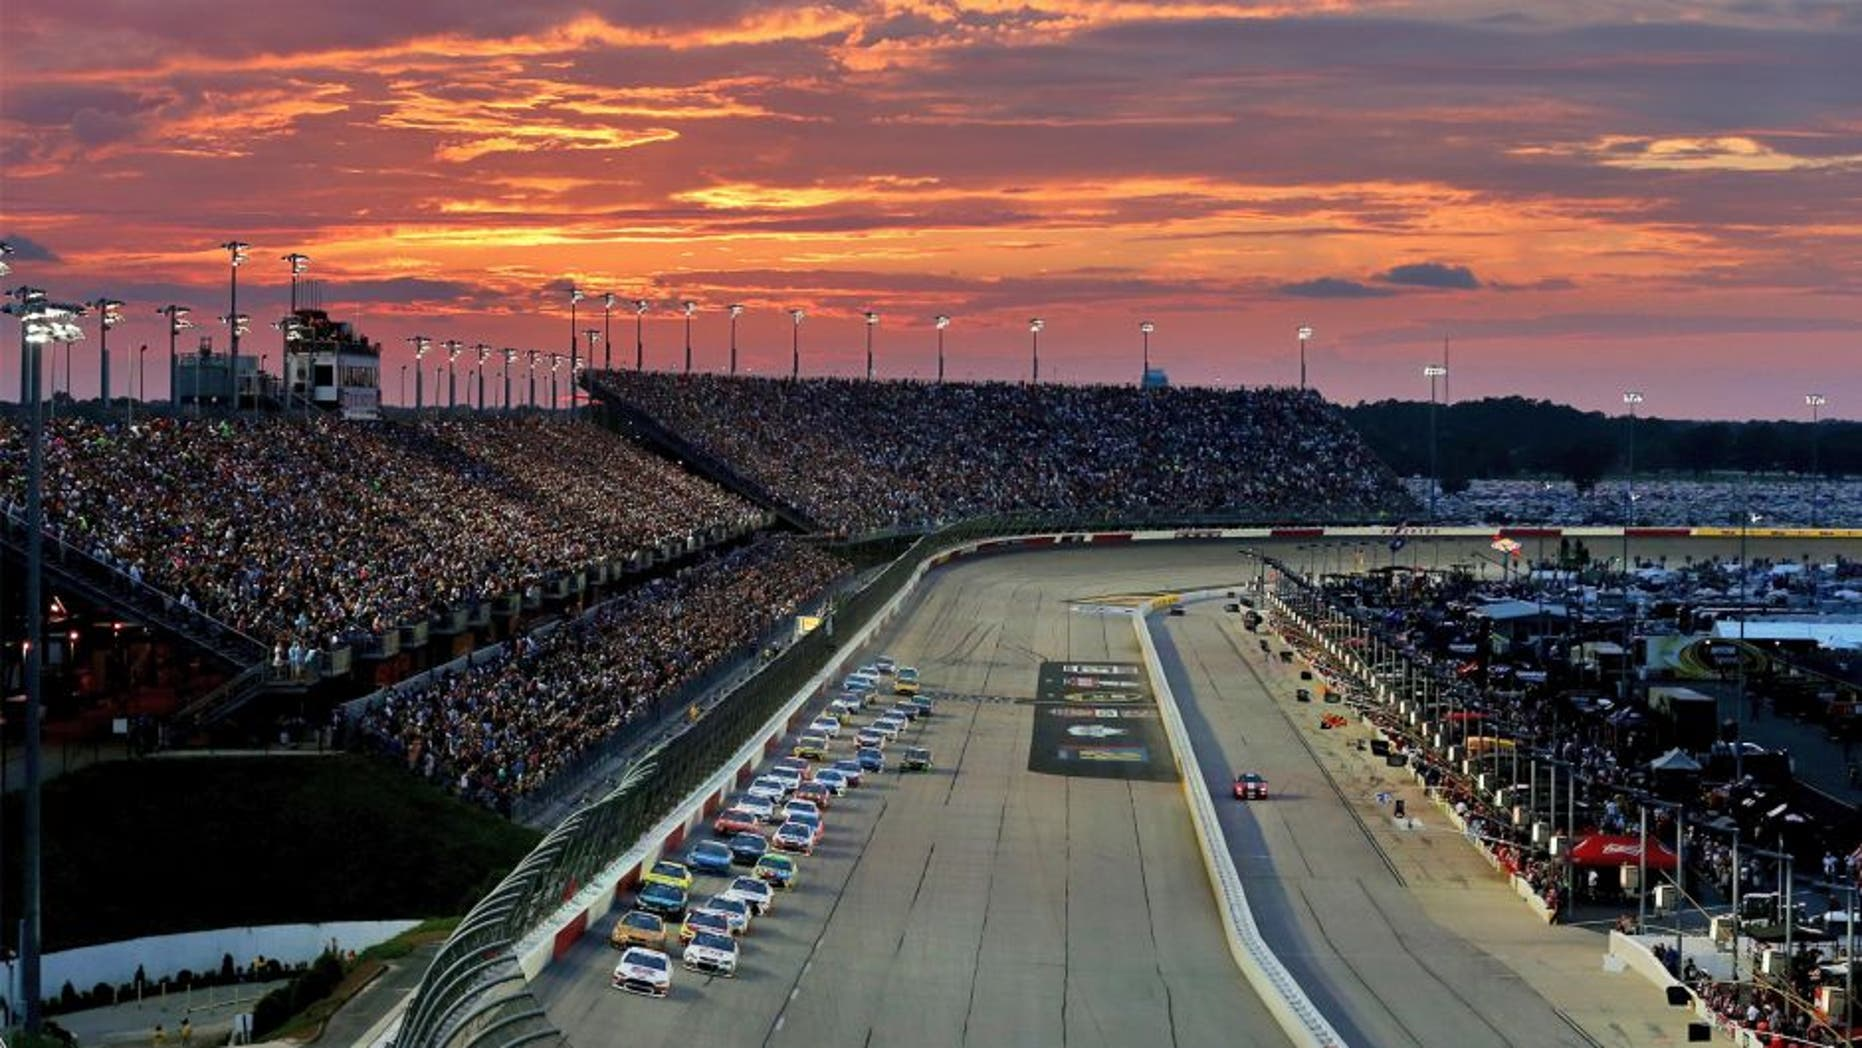 DARLINGTON, SC - SEPTEMBER 06: Brad Keselowski, driver of the #2 Miller High Life Ford, leads the field on a restart during the NASCAR Sprint Cup Series Bojangles' Southern 500 at Darlington Raceway on September 6, 2015 in Darlington, South Carolina. (Photo by Sarah Crabill/NASCAR via Getty Images)